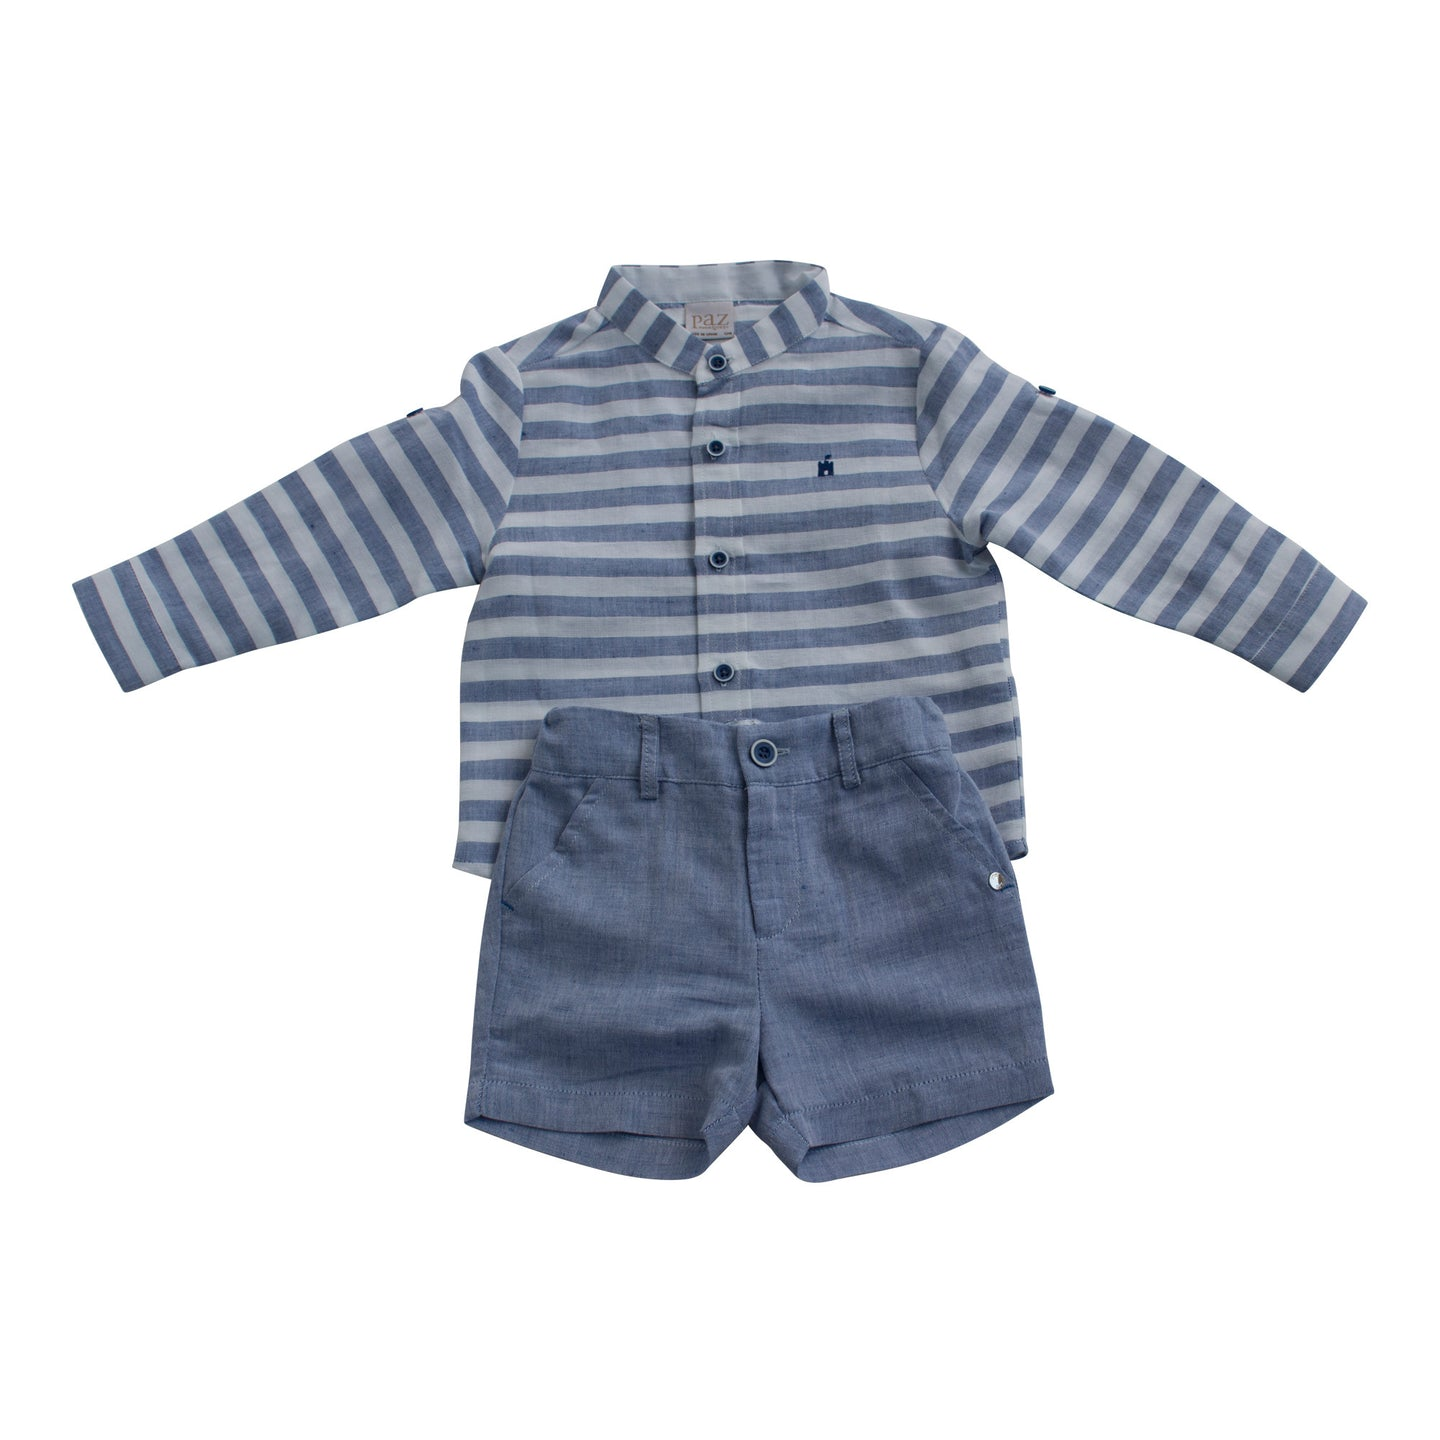 Paz Rodriguez Blue and White Infant Boys Striped Shirt and Short Set